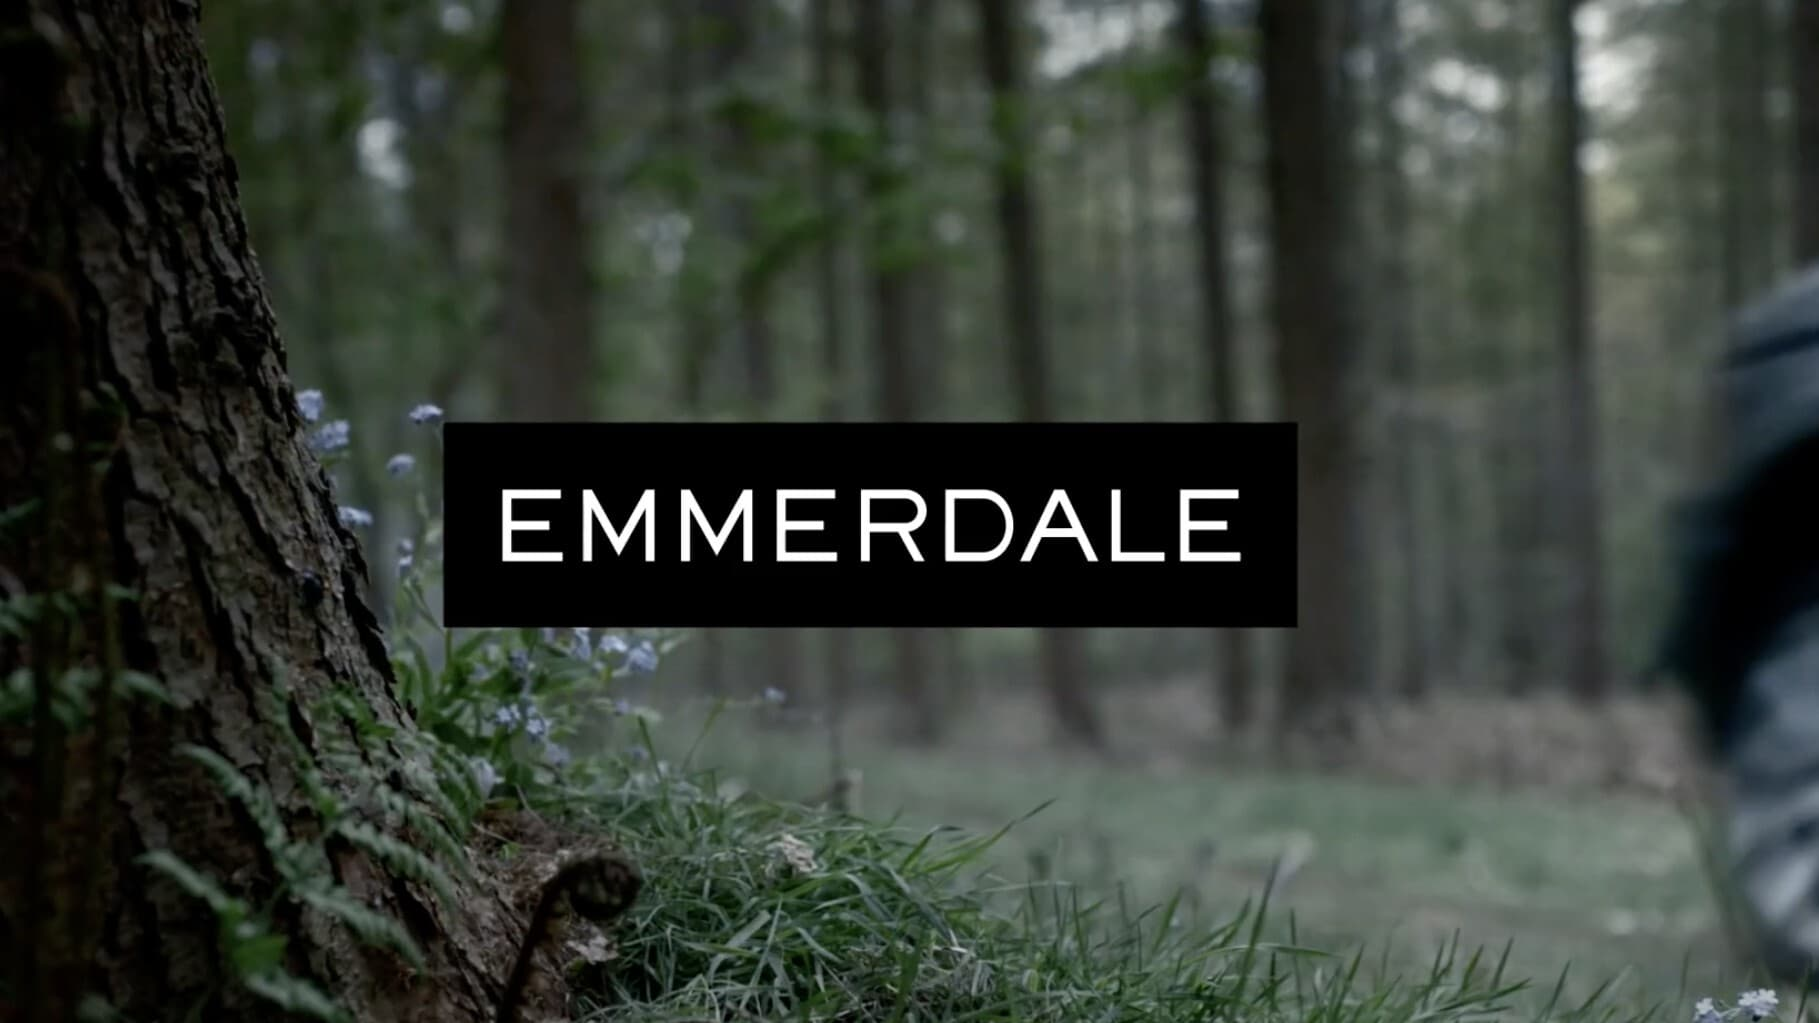 Emmerdale - Season 36 Episode 293 : December 24, 2007